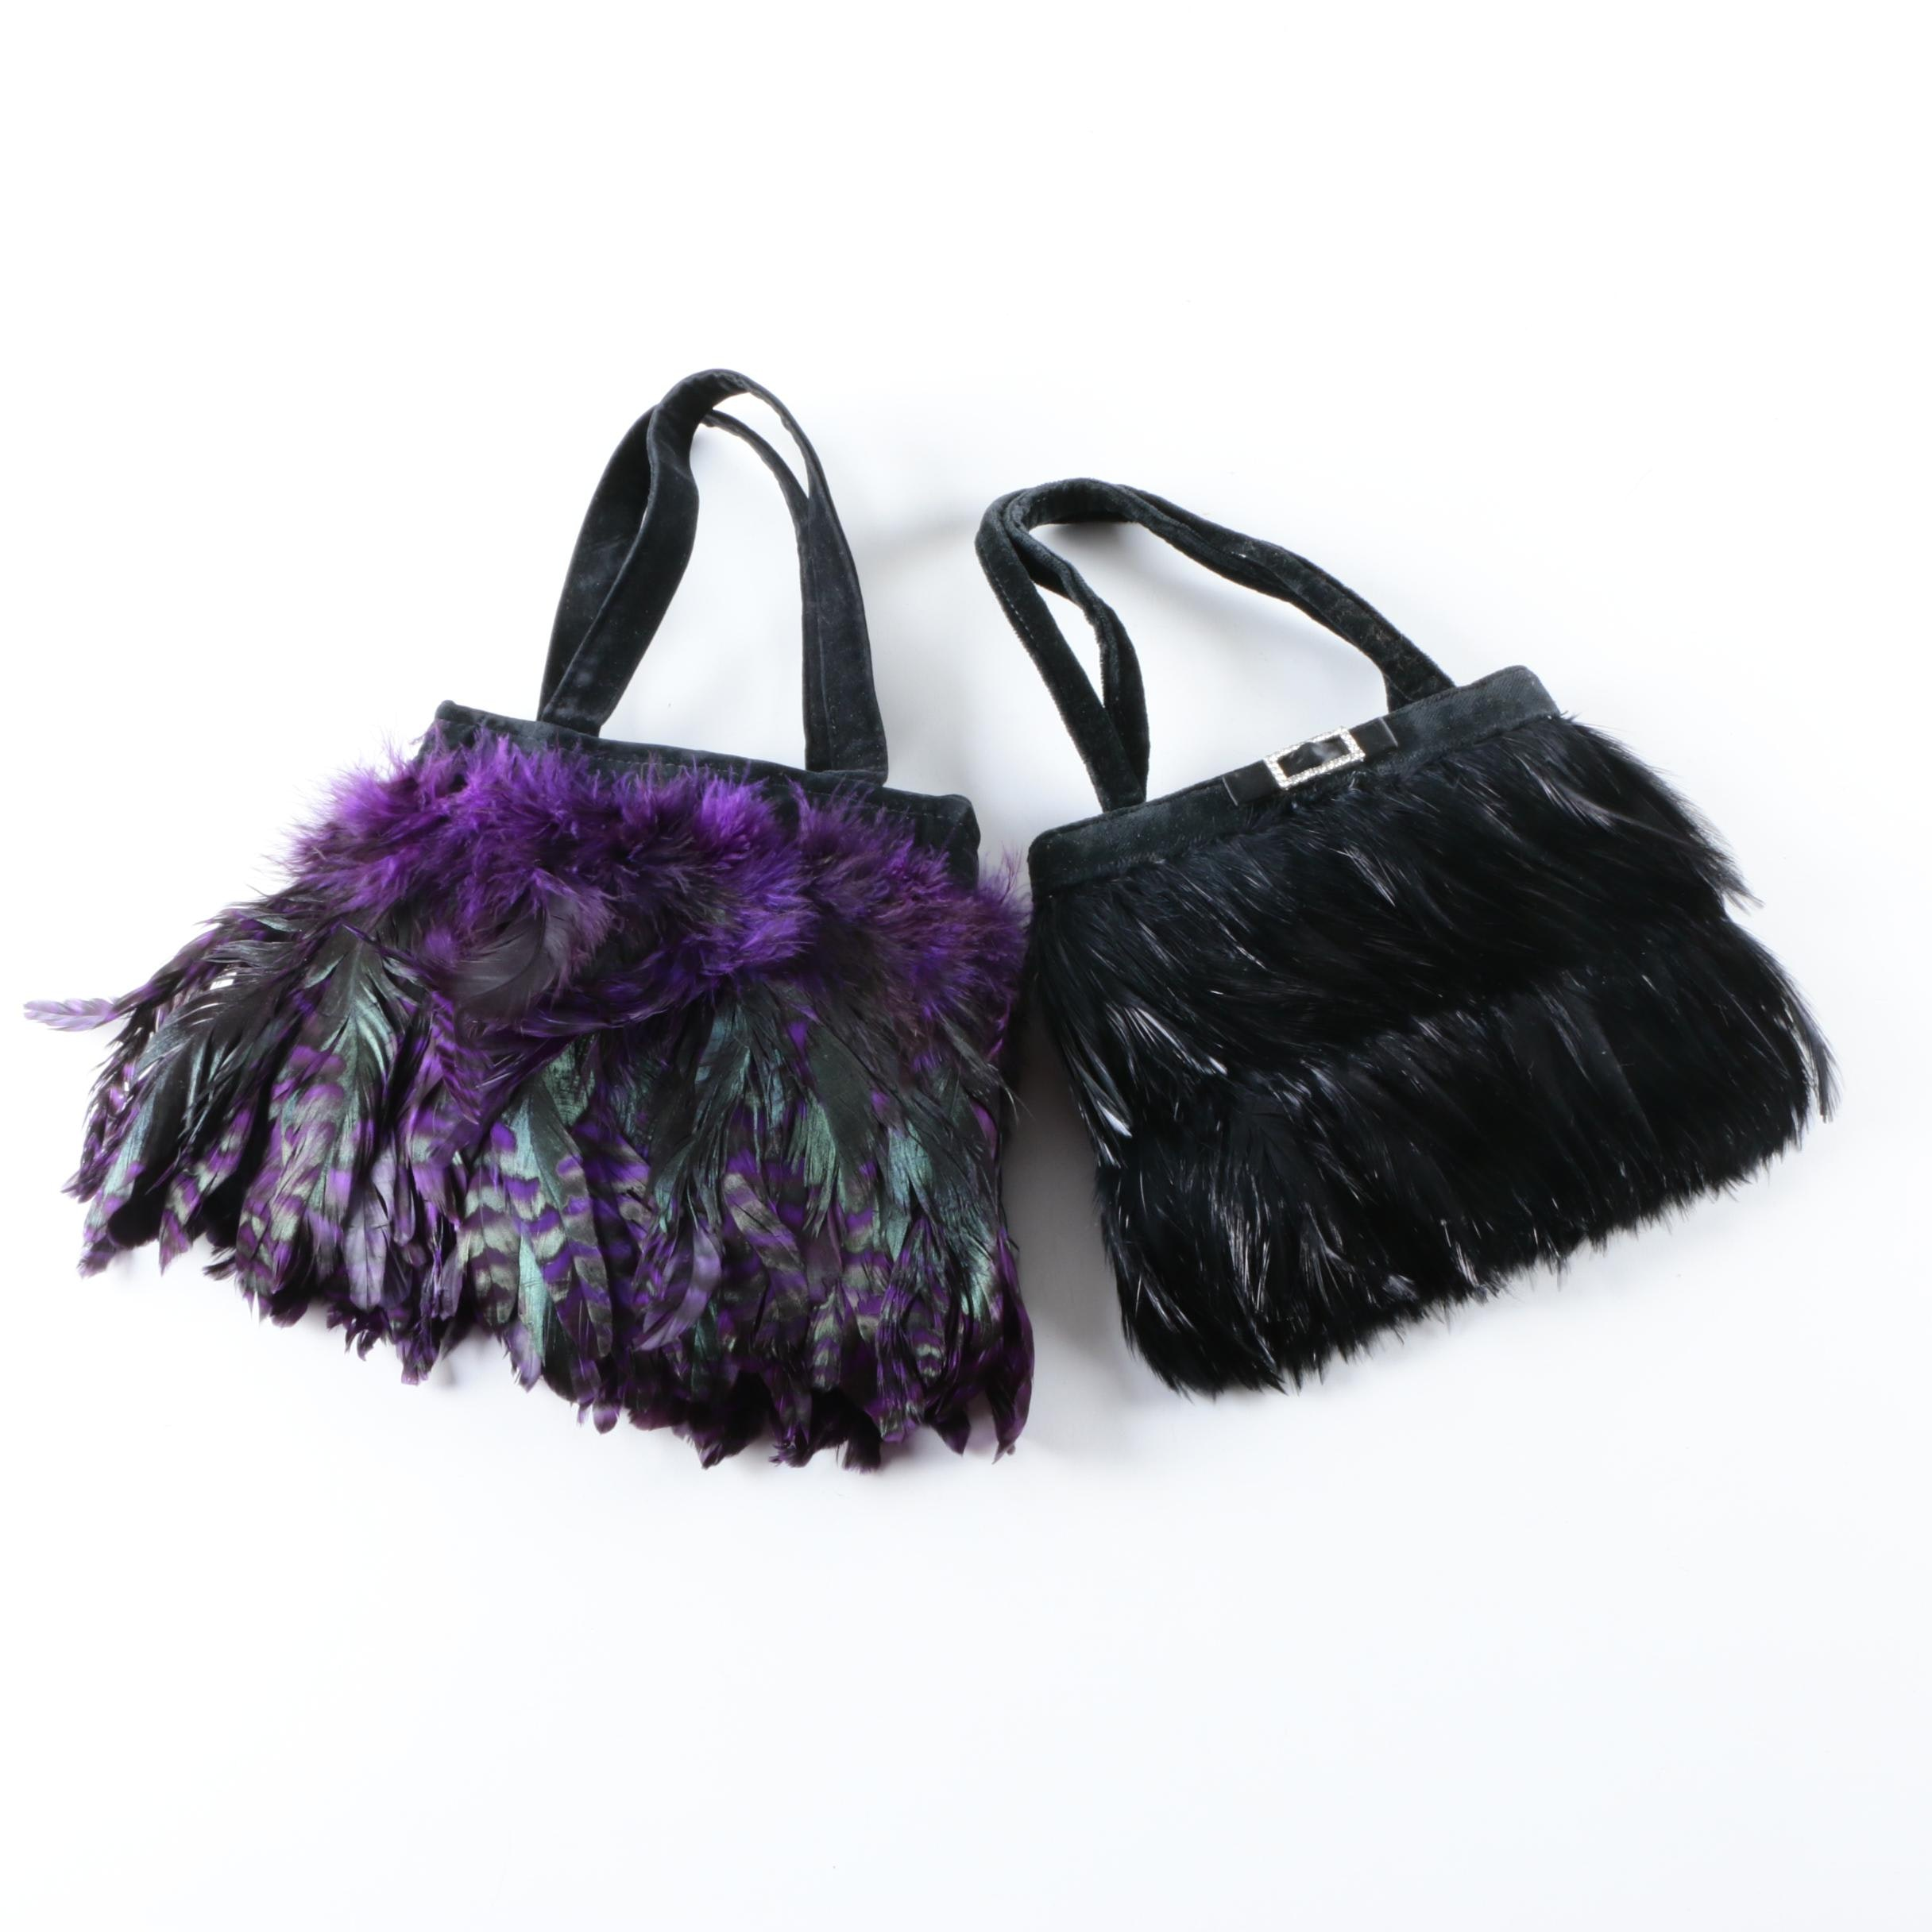 Two Feather Handbags Including Noir